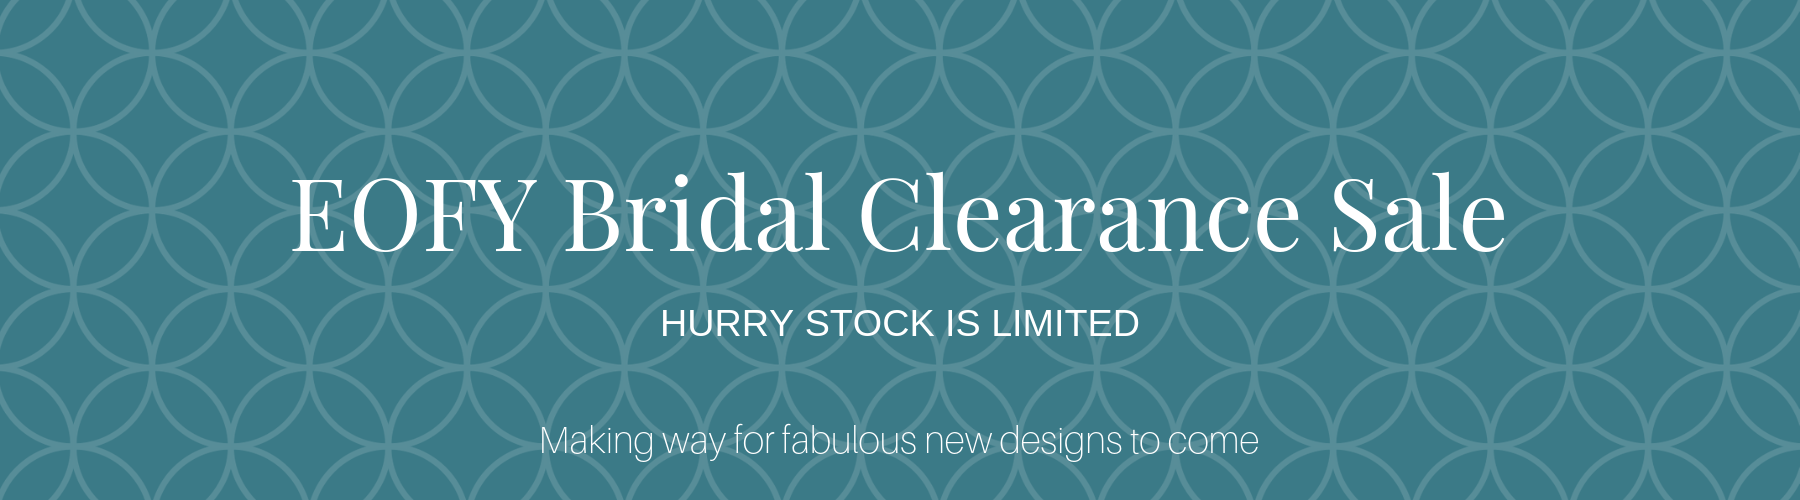 Bridal Clearance Sale